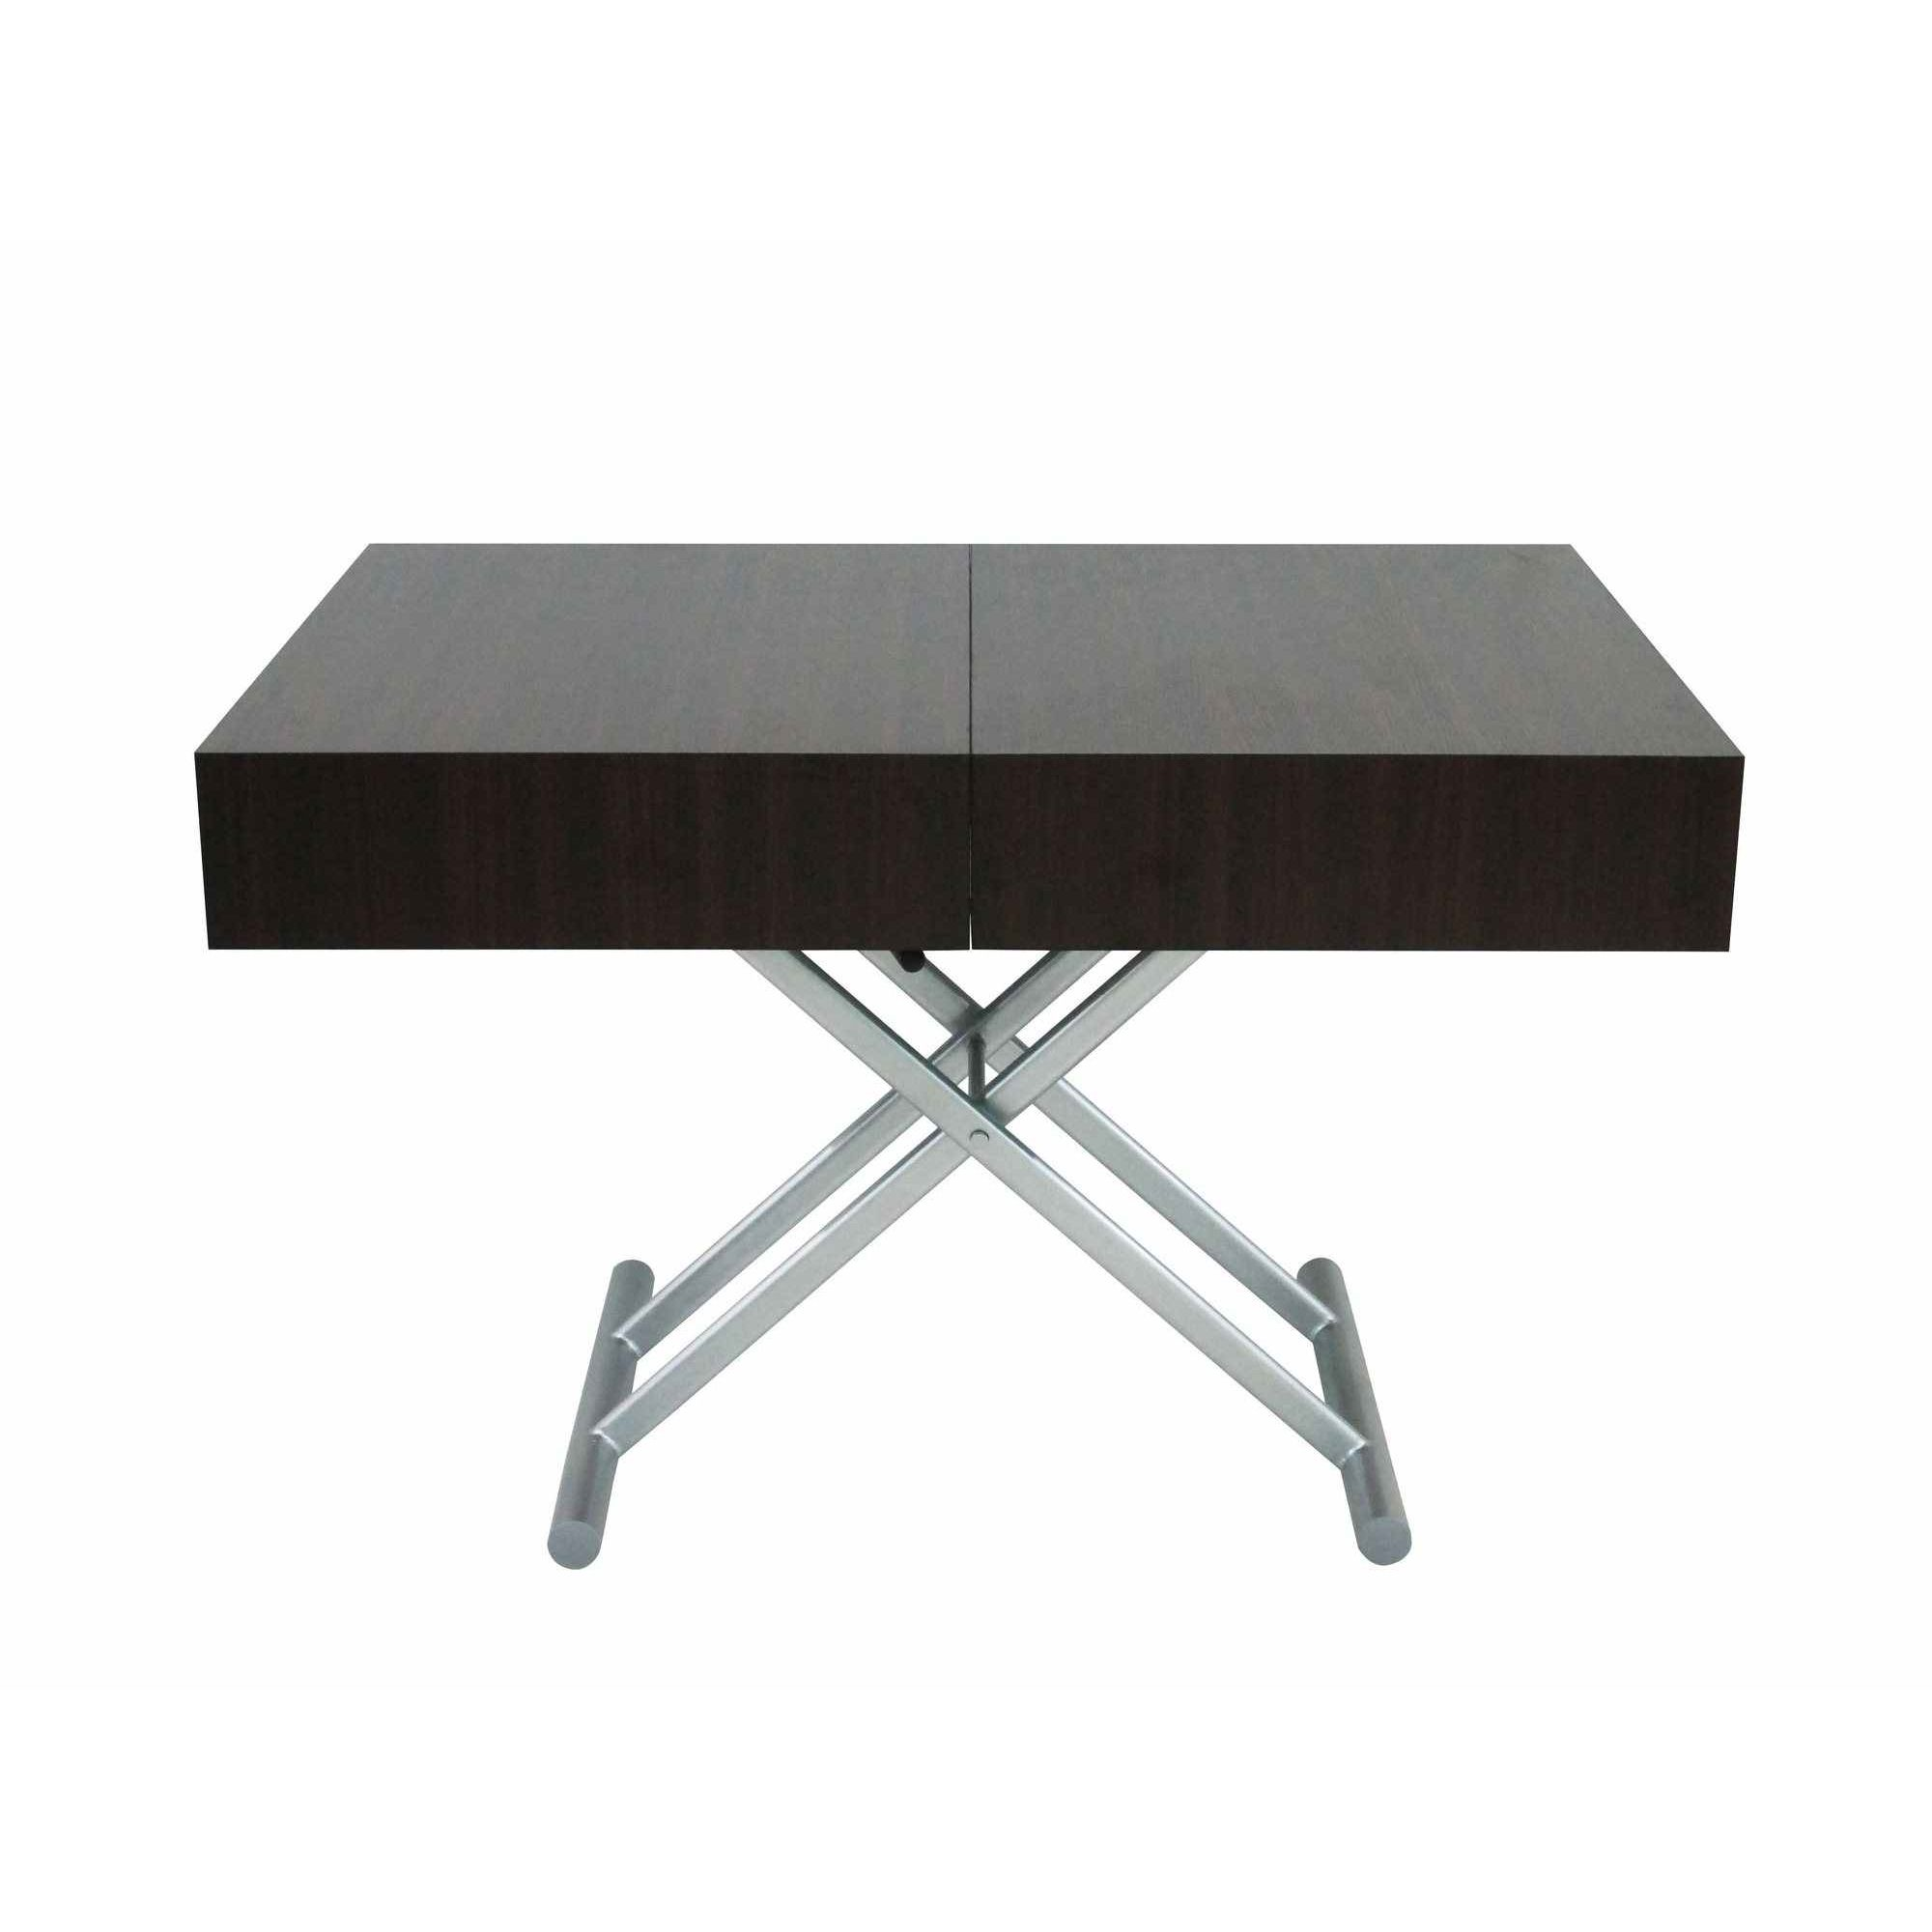 Deco in paris table basse relevable extensible wenge smart xxl smart wenge xxl - Table basse relevable wenge ...